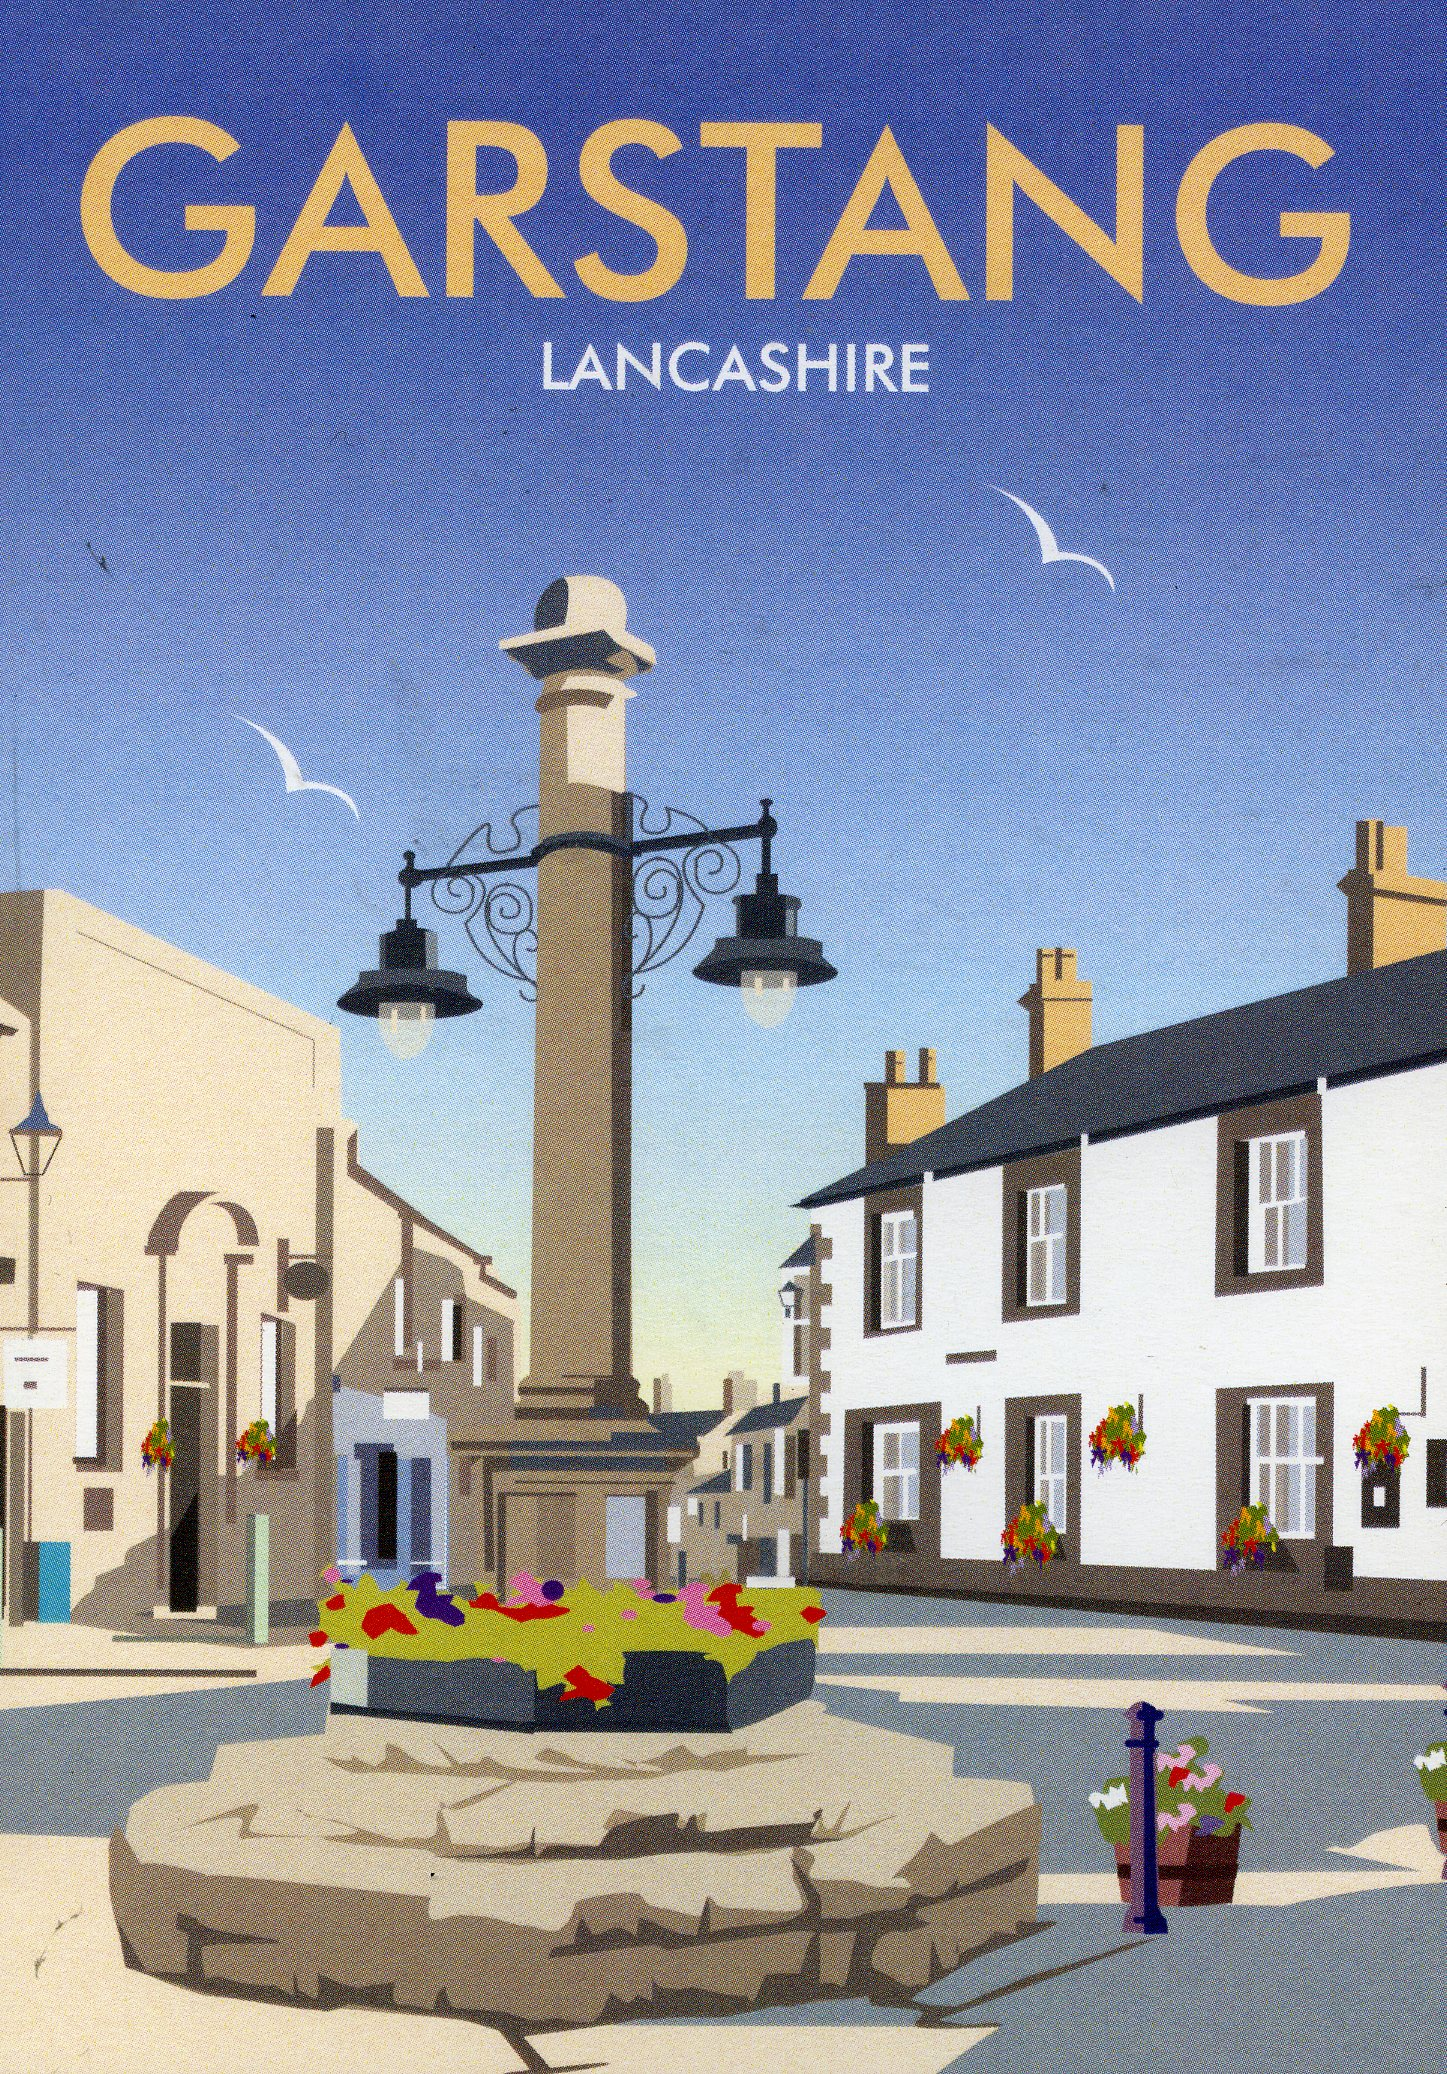 Above: A Garstang greeting card from Star Editions that is stocked by Best Wishes.